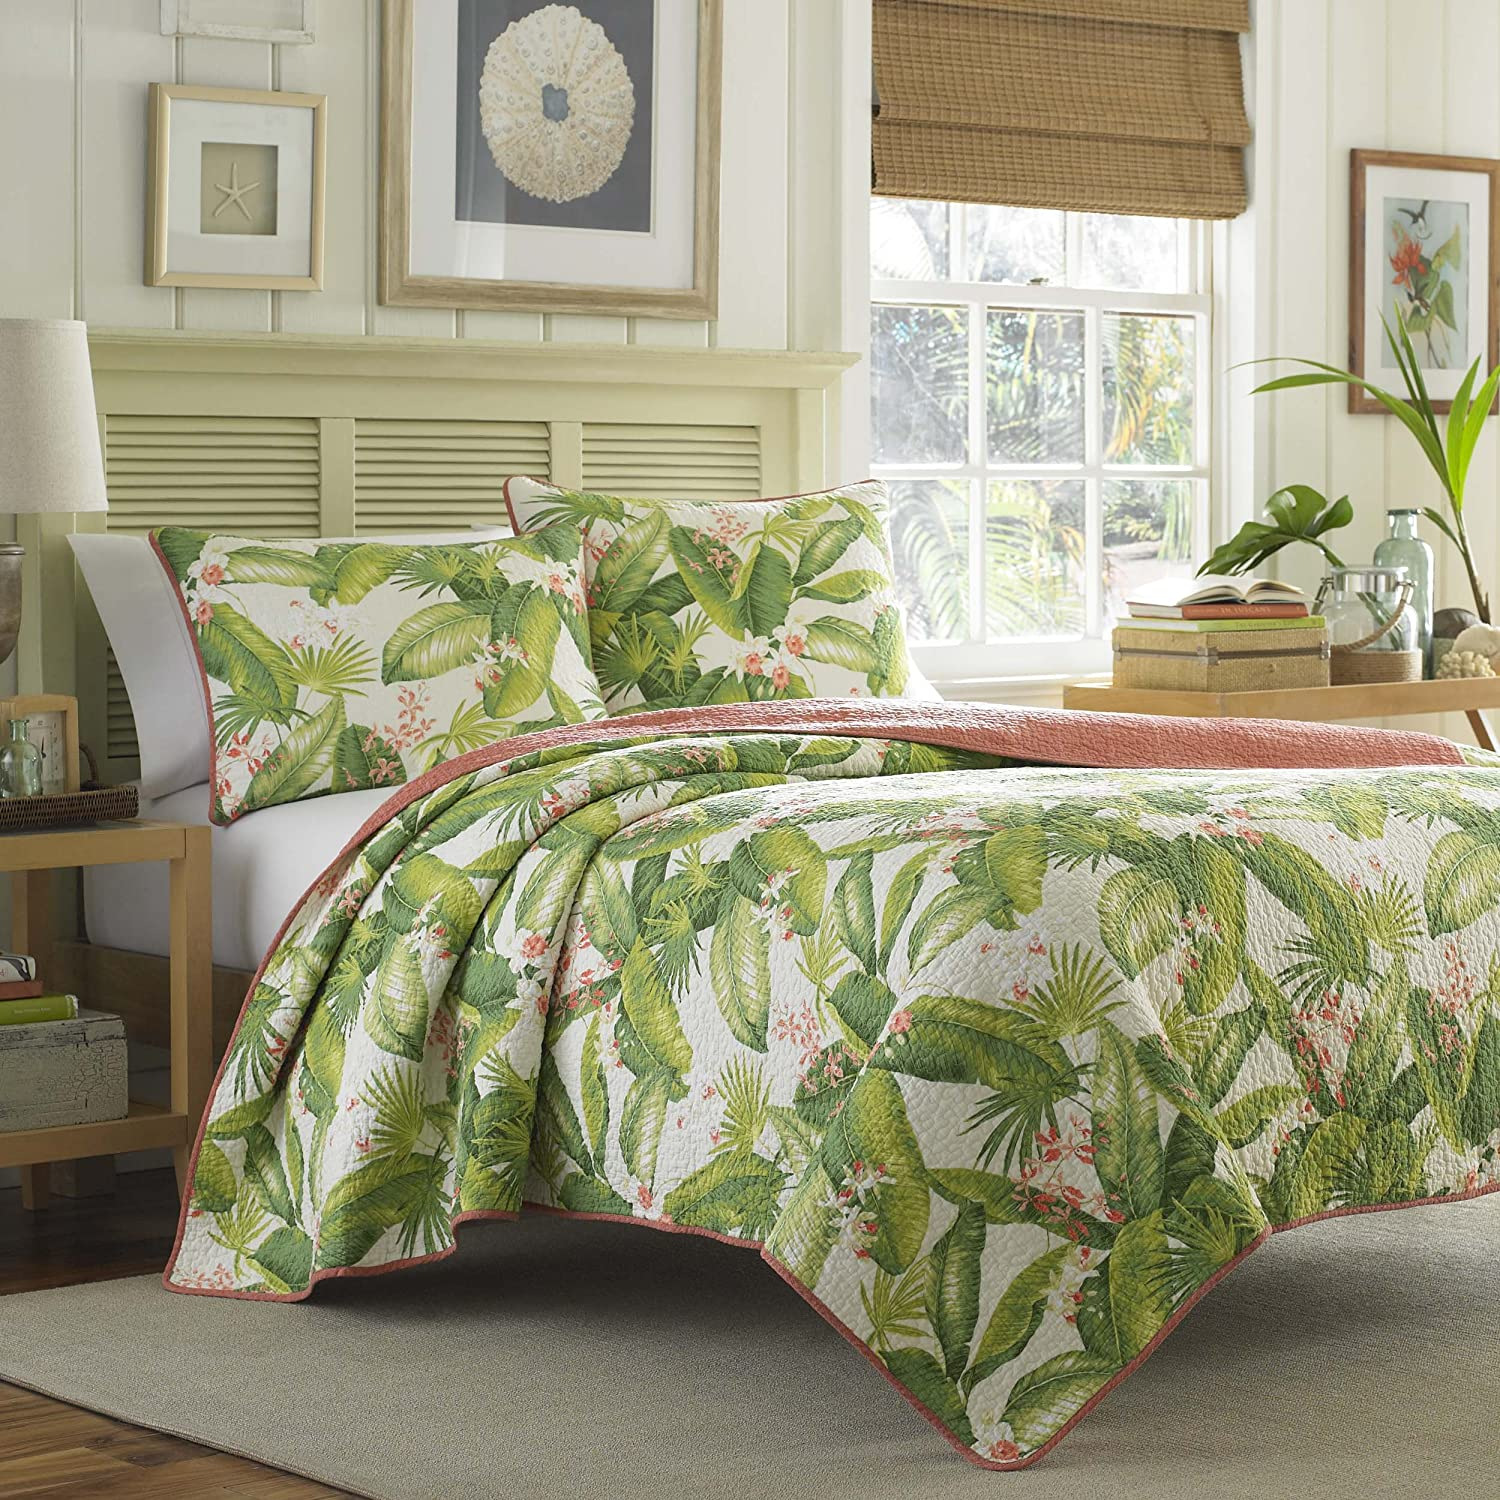 Tommy bahama bedding sets ease bedding with style tommy bahama aregada dock ecru quilt set king ecru gumiabroncs Gallery